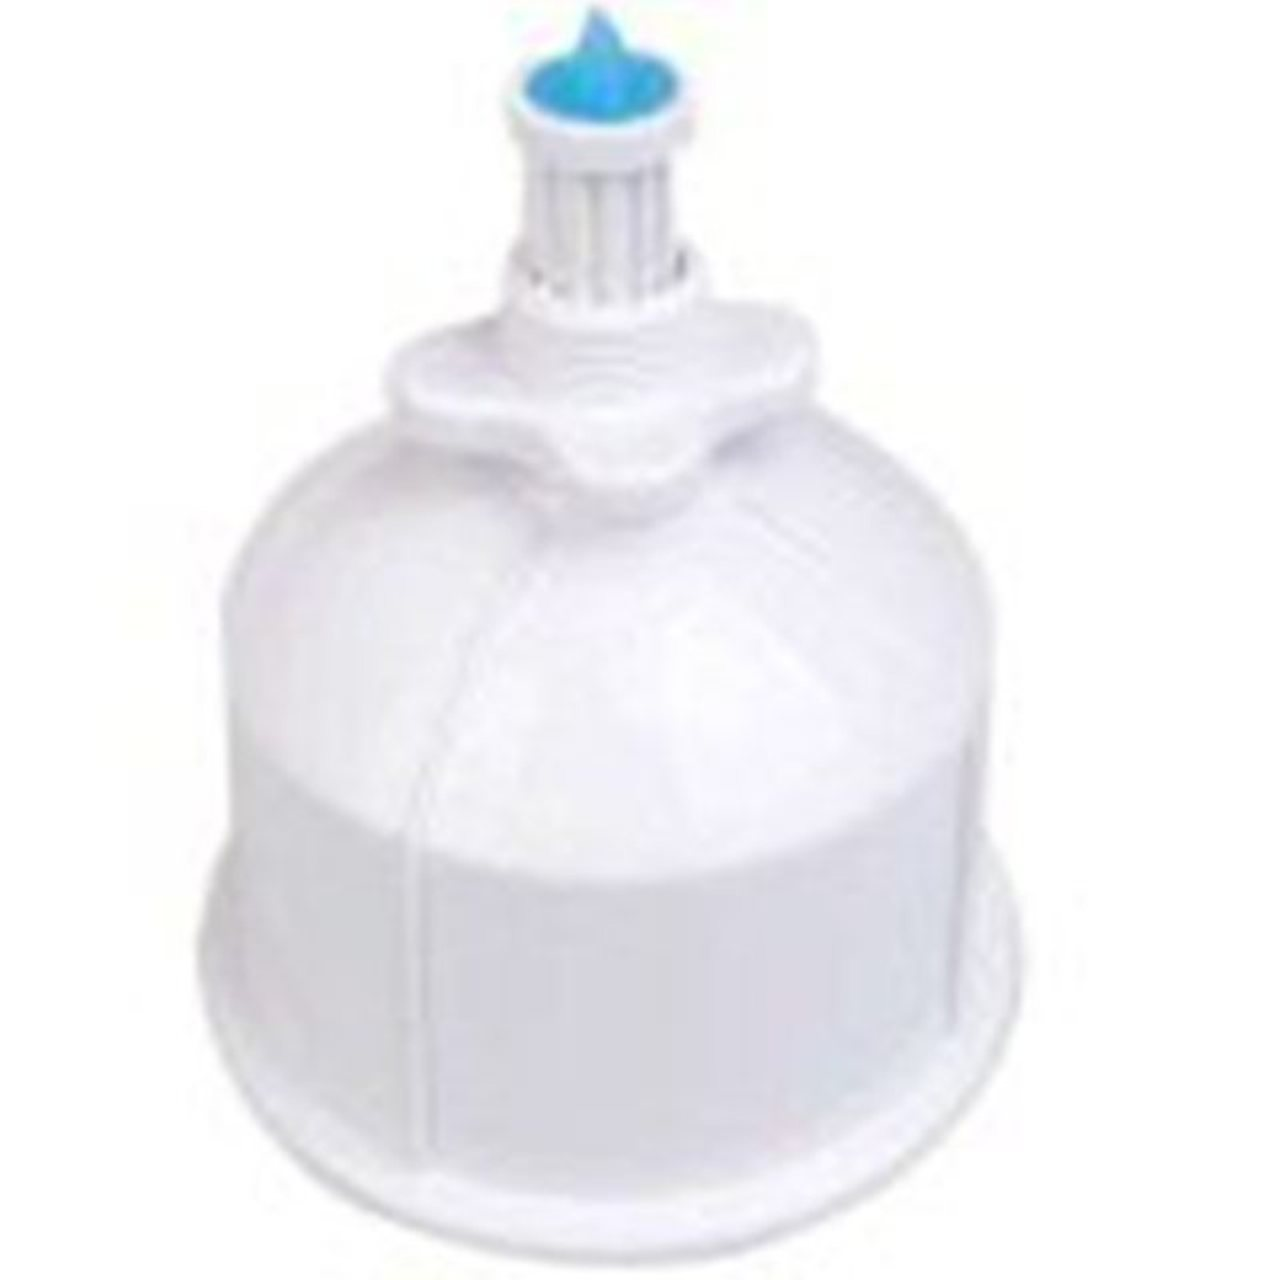 Beauty bucket universal bucket float float float float float float float ball beauty beauty